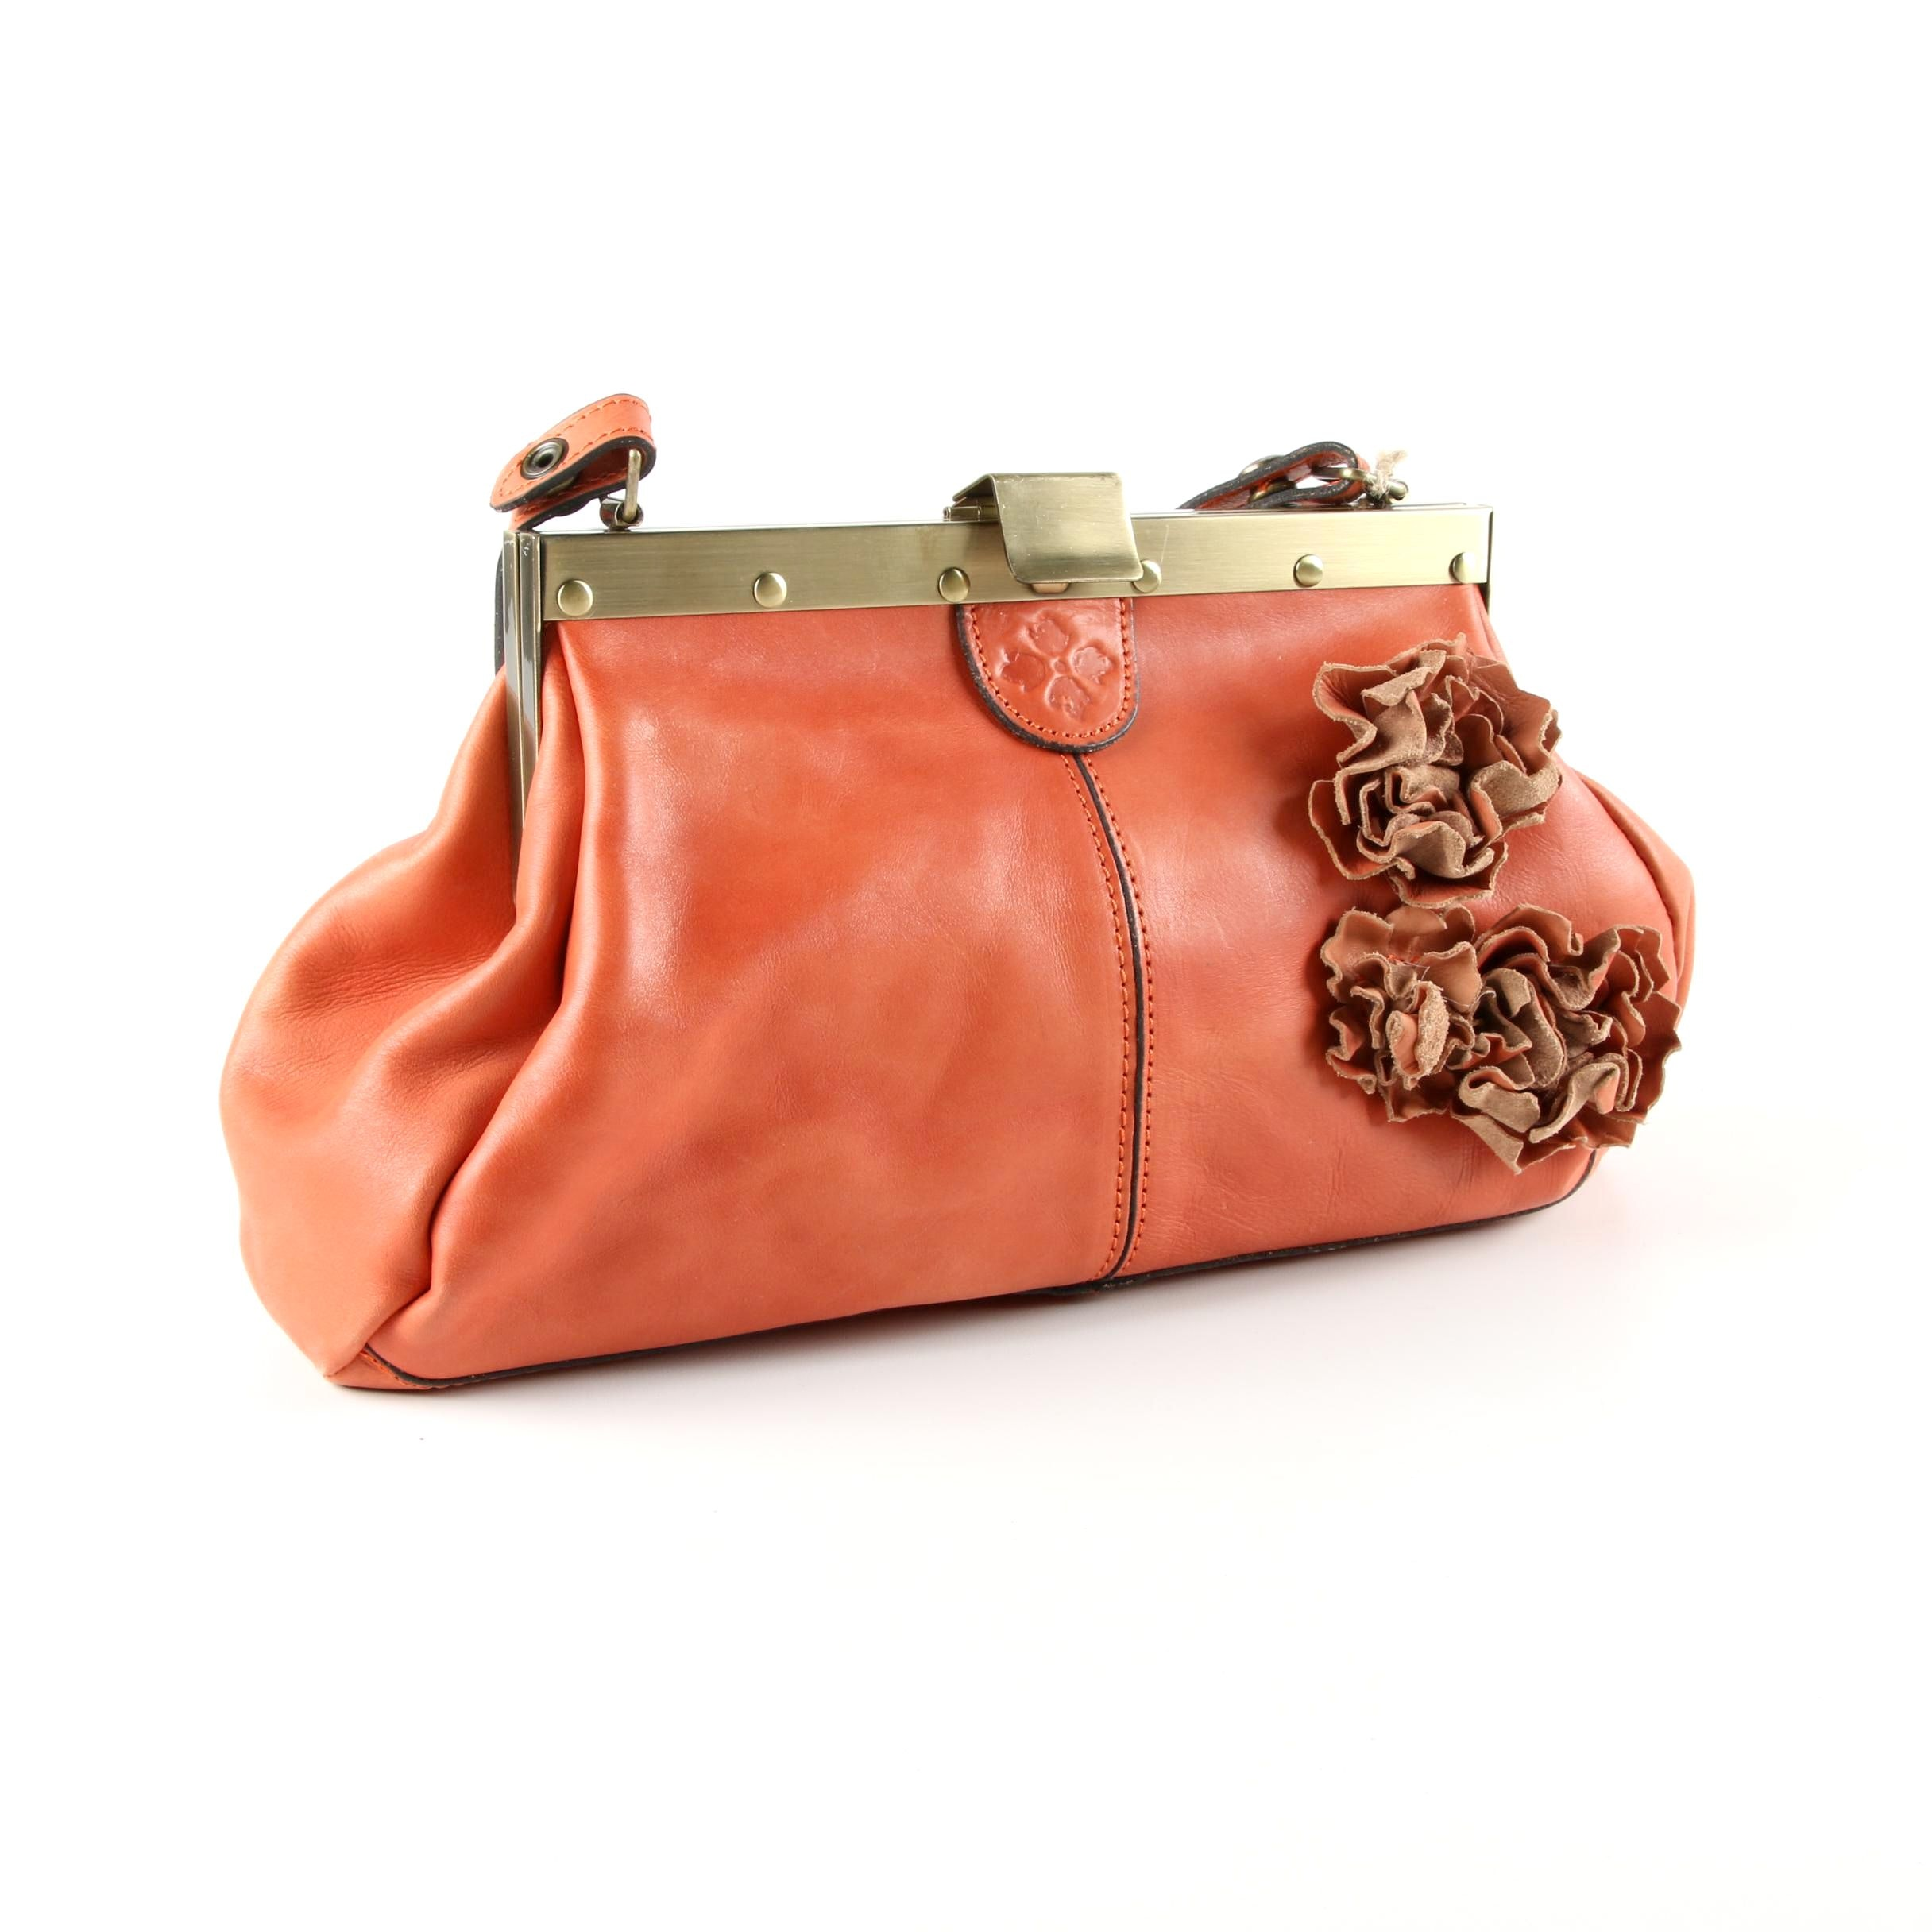 Patricia Nash Ferrera Orange Leather Satchel